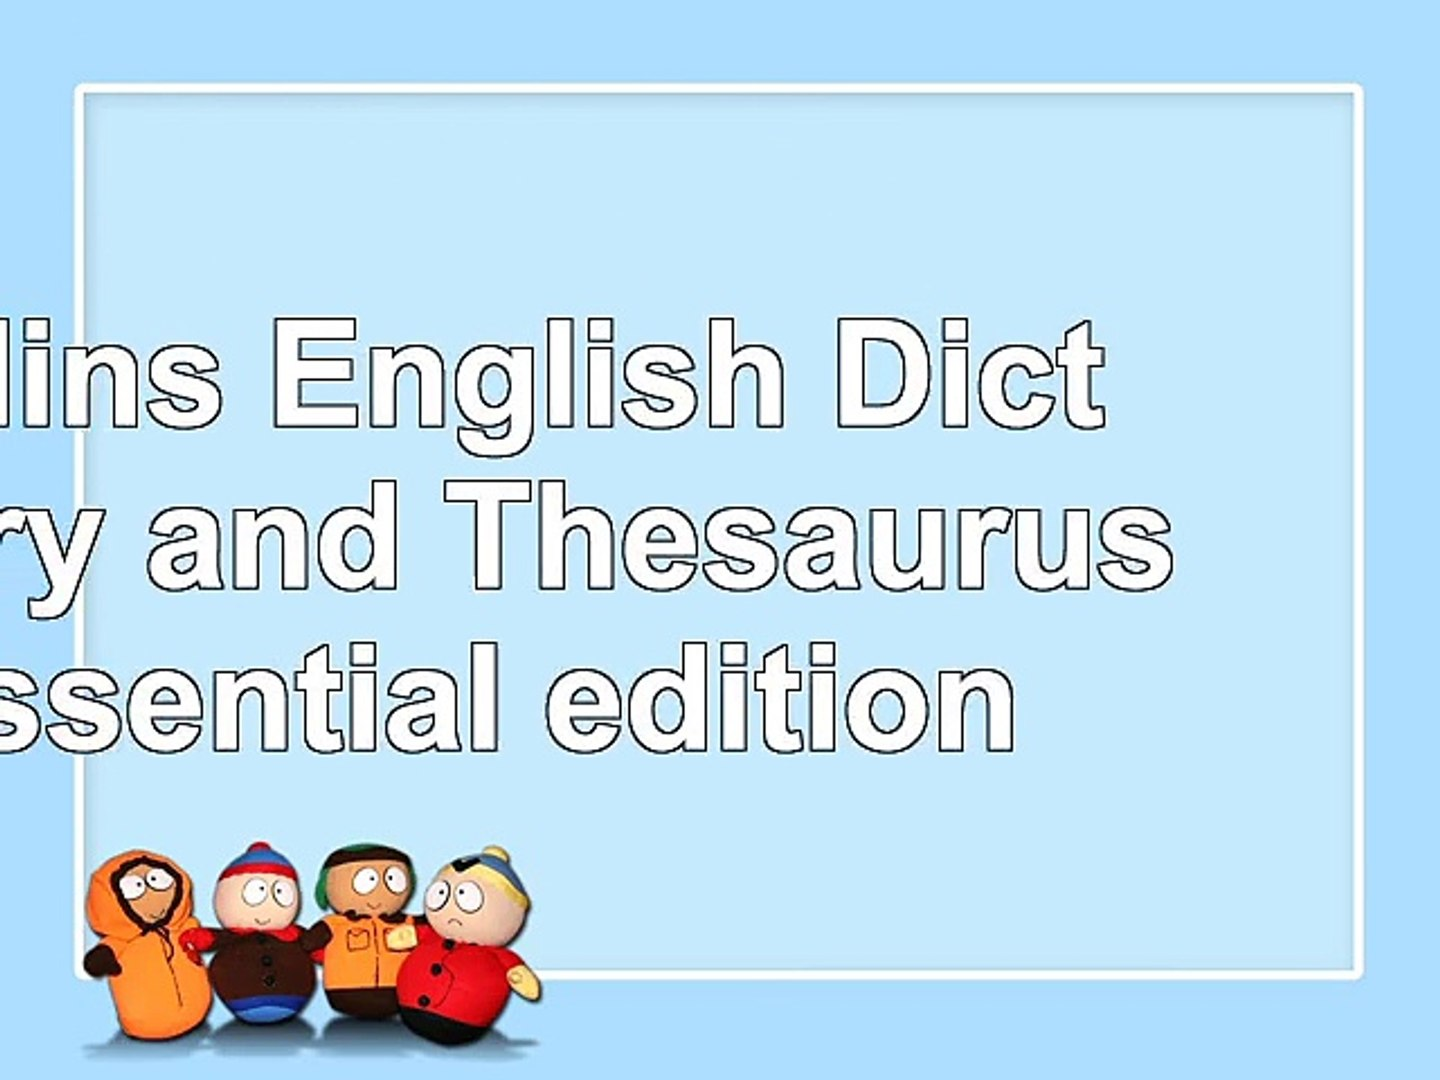 Read  Collins English Dictionary and Thesaurus Essential edition b7602155